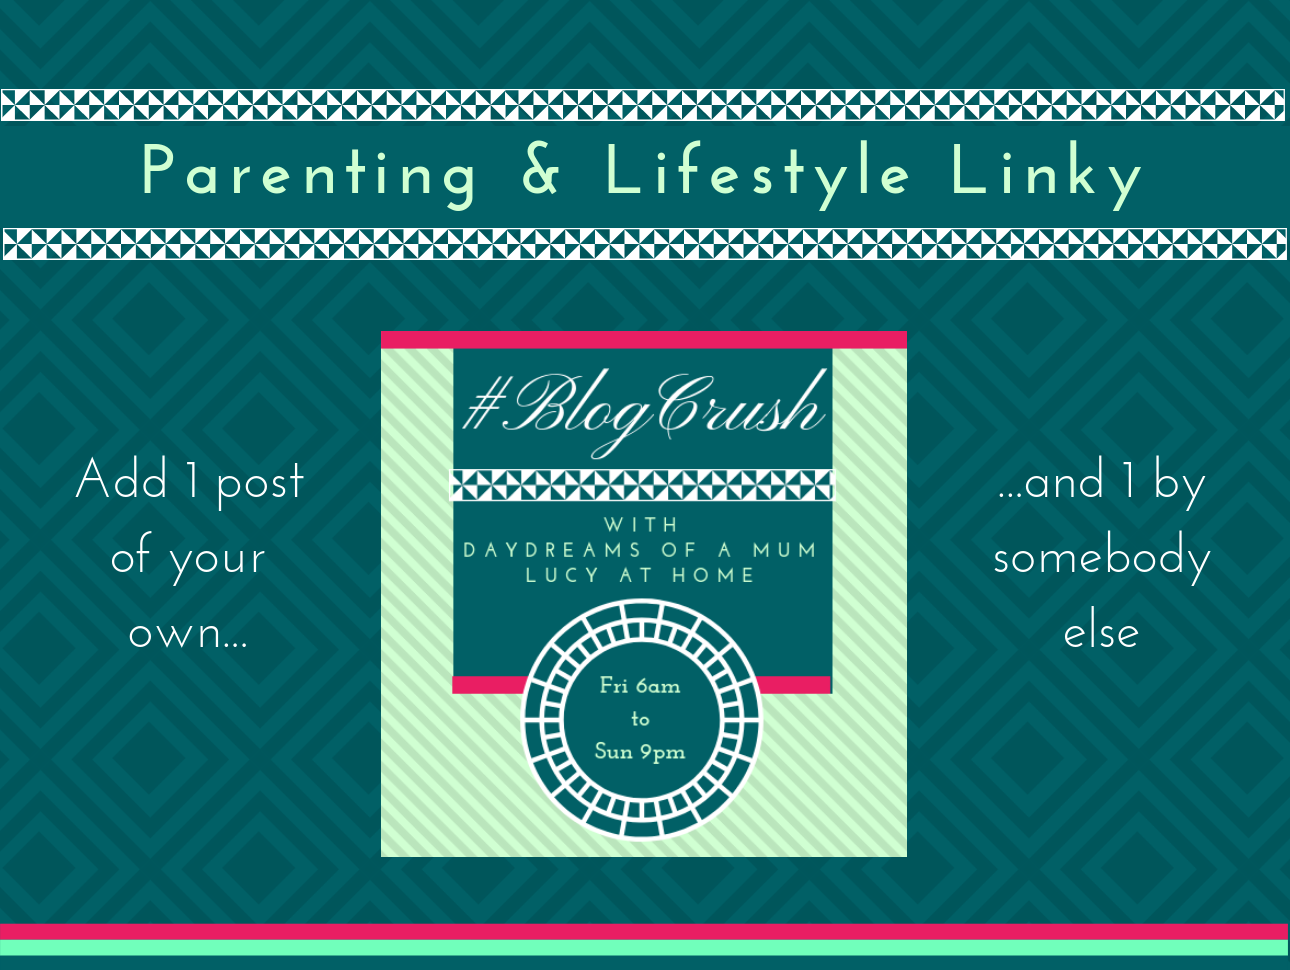 BlogCrush Linky Concept - BlogCrush Week 98